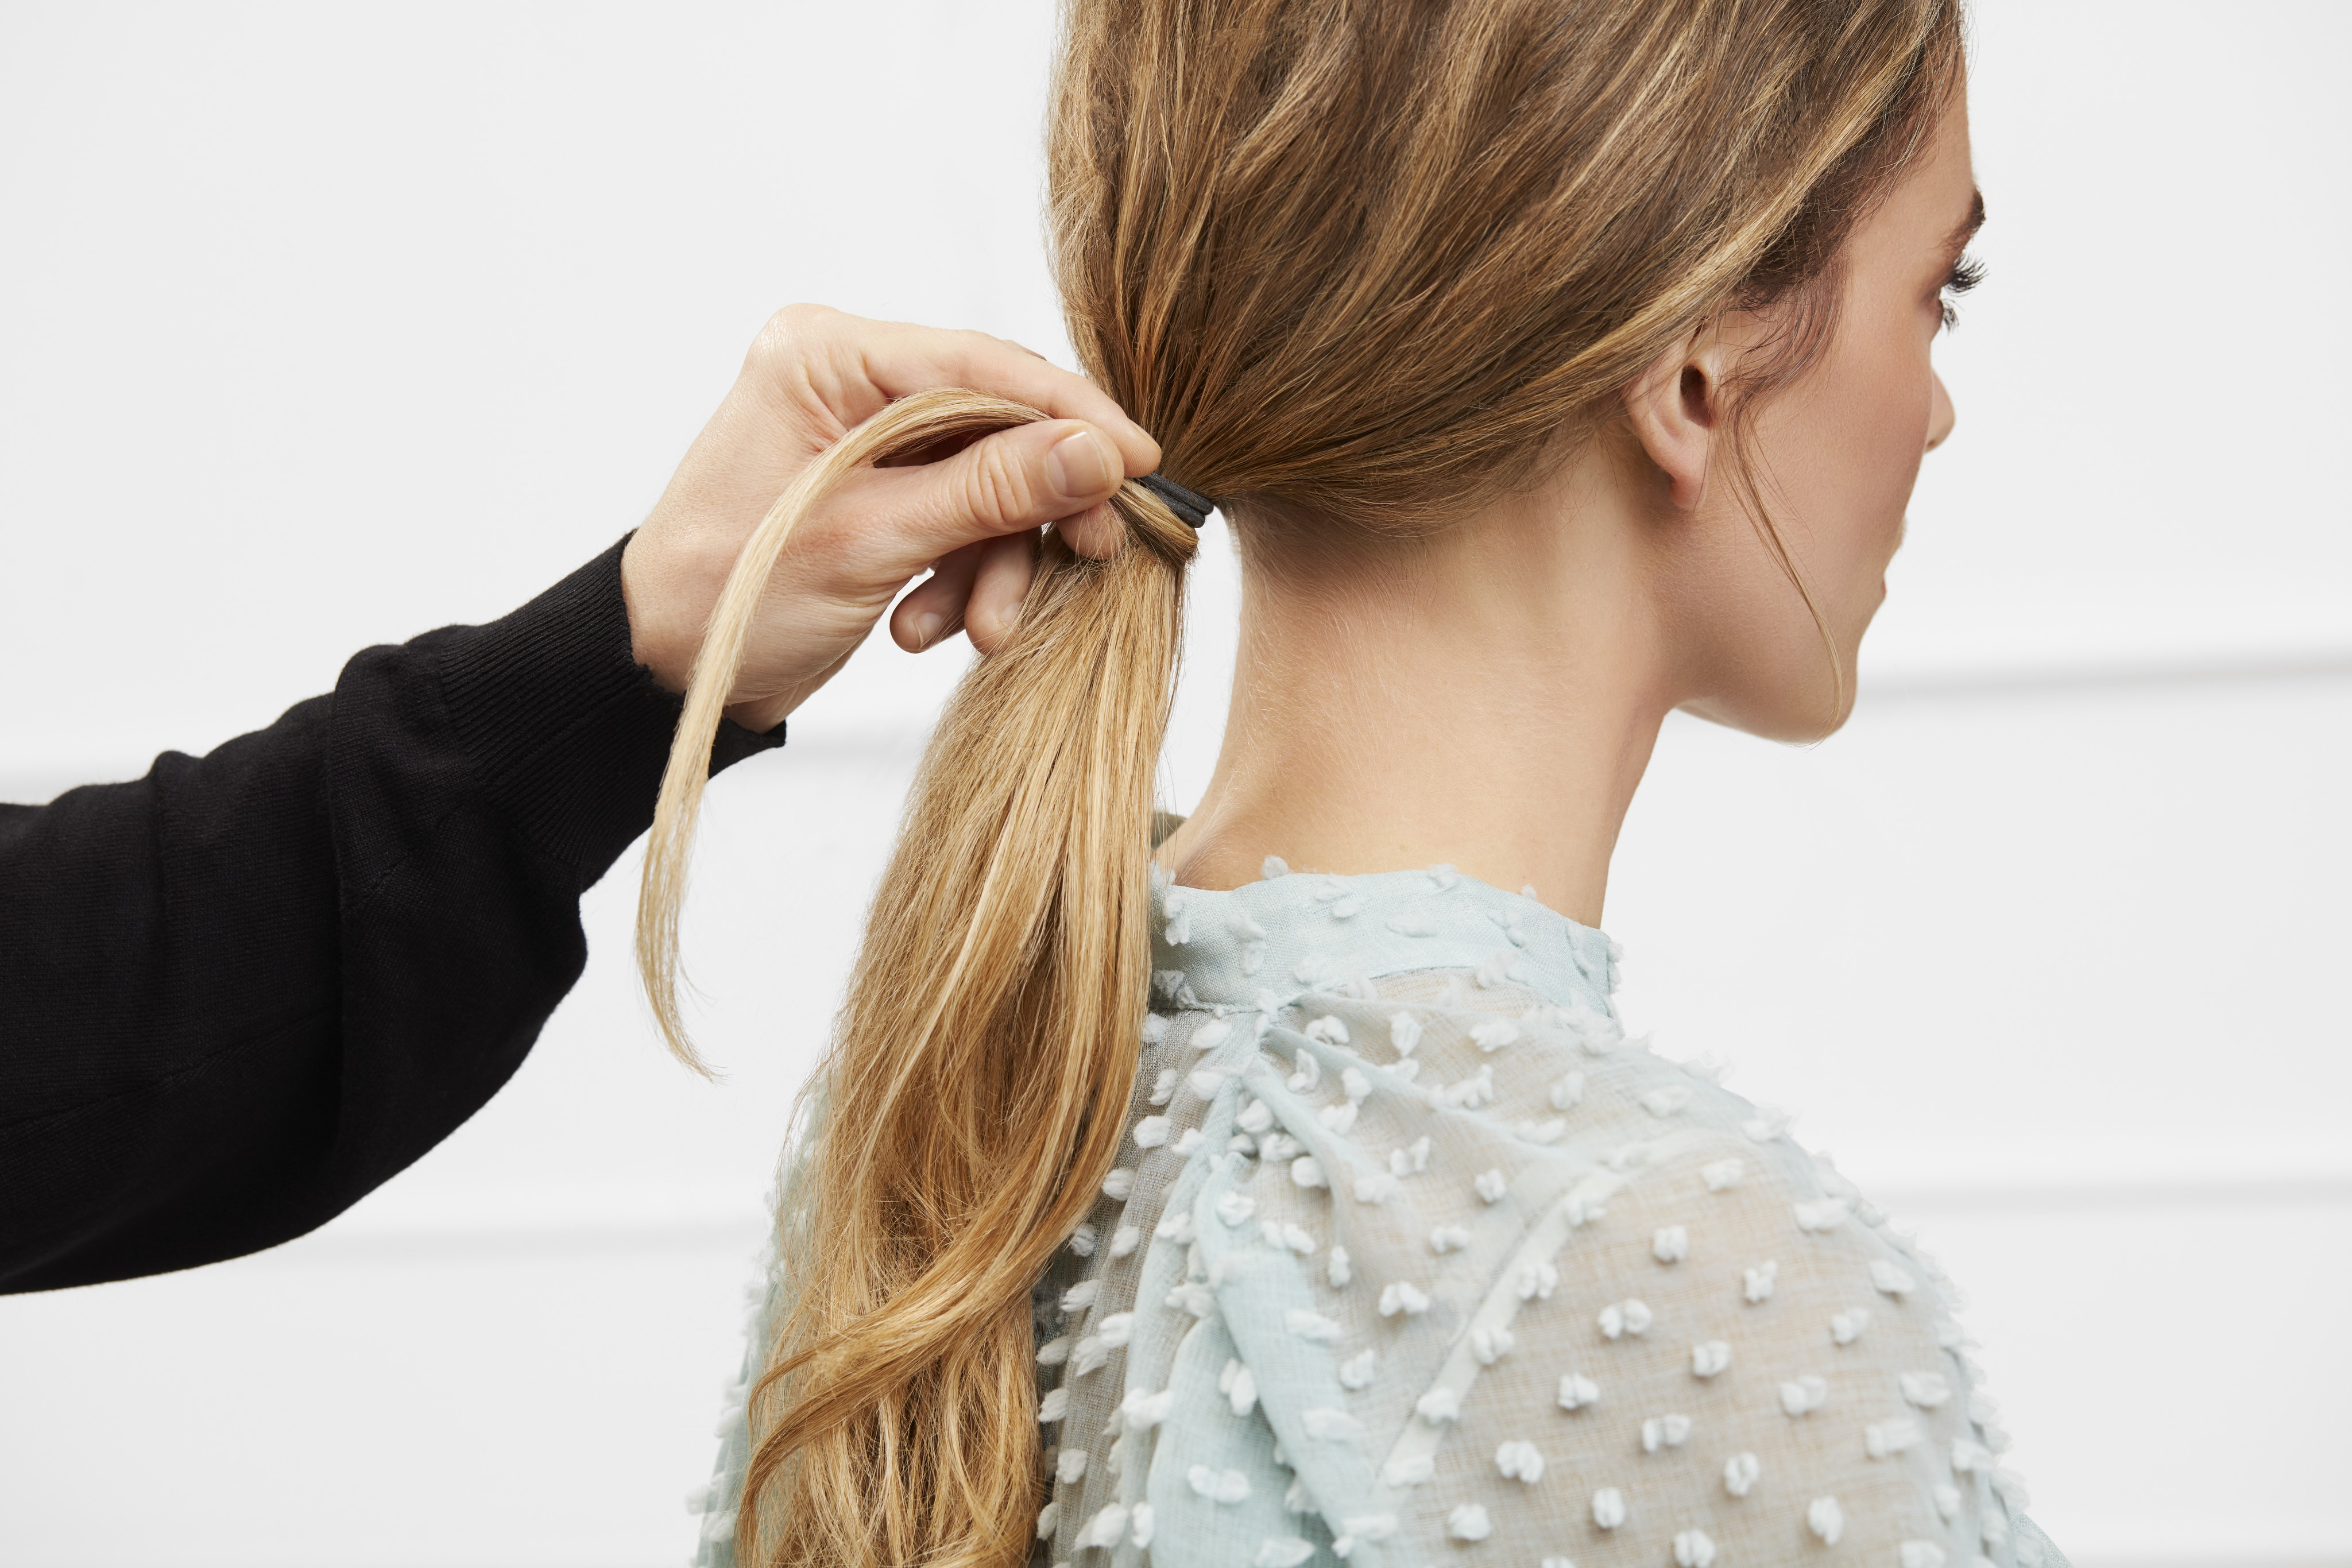 Haircare-application-low-messy-ponytail-look-tutorial-step-3-122021-Web-Rendition